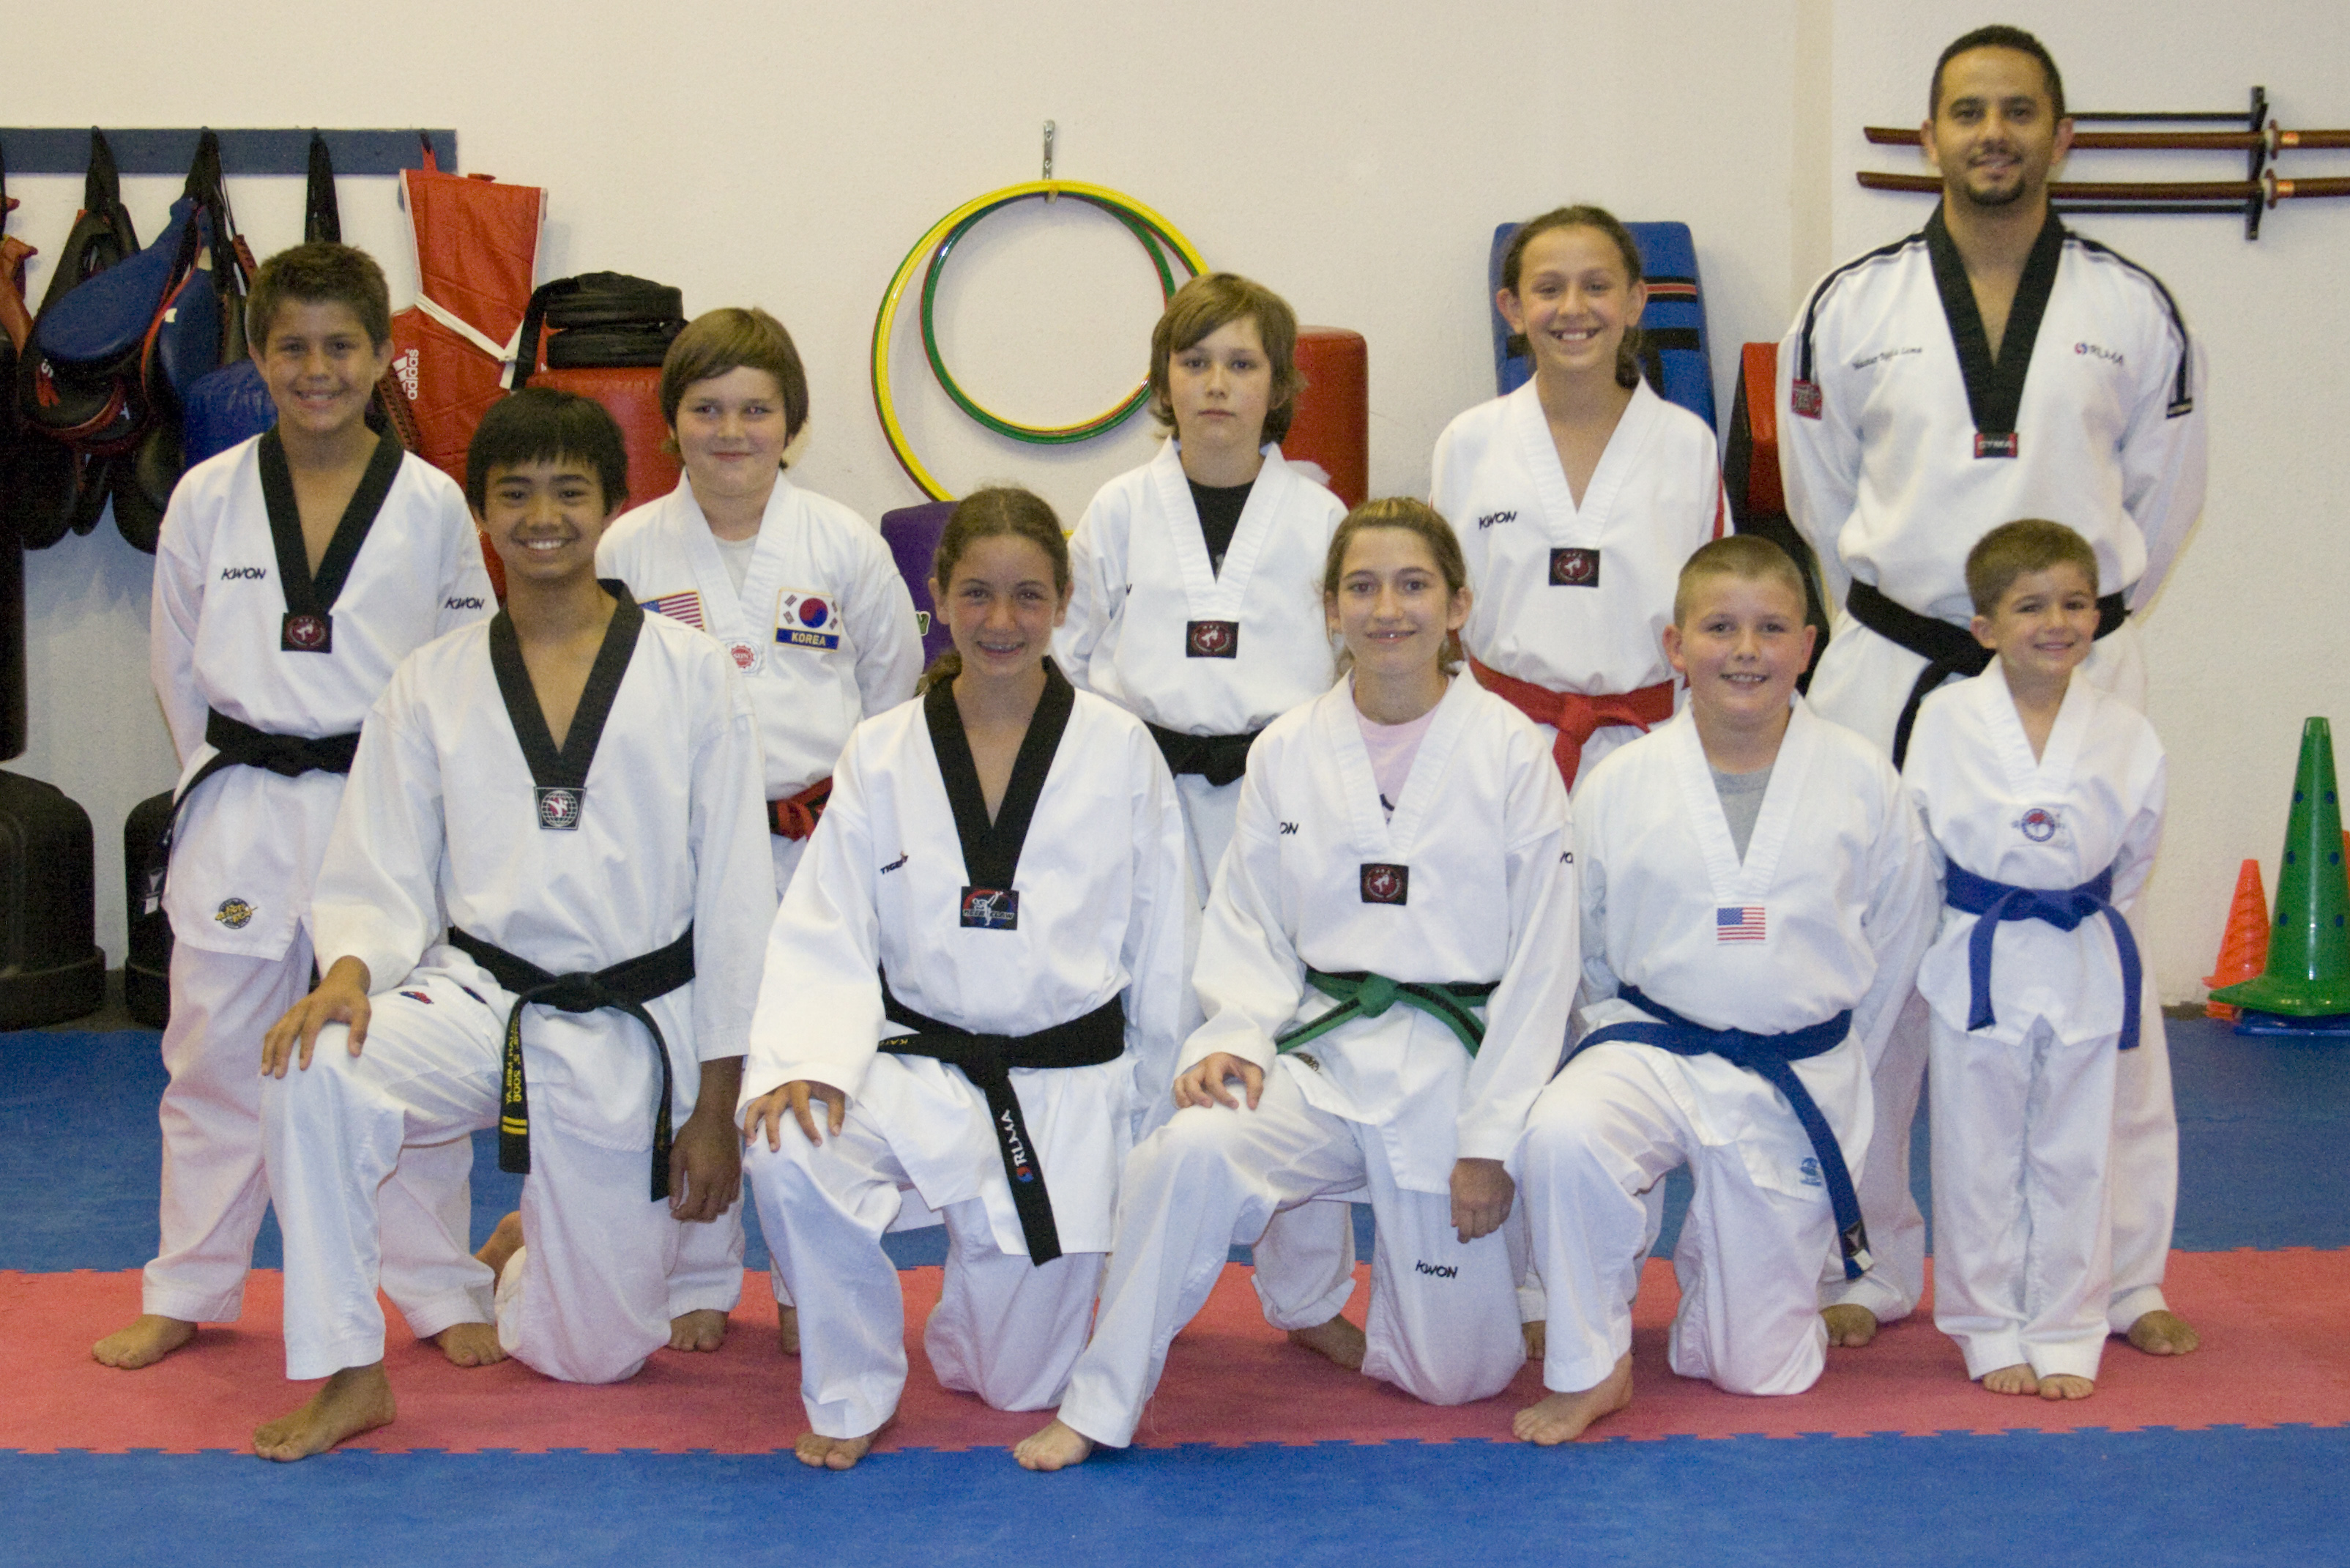 Team Members that compeated in the 2009 RLMA Scrimmage